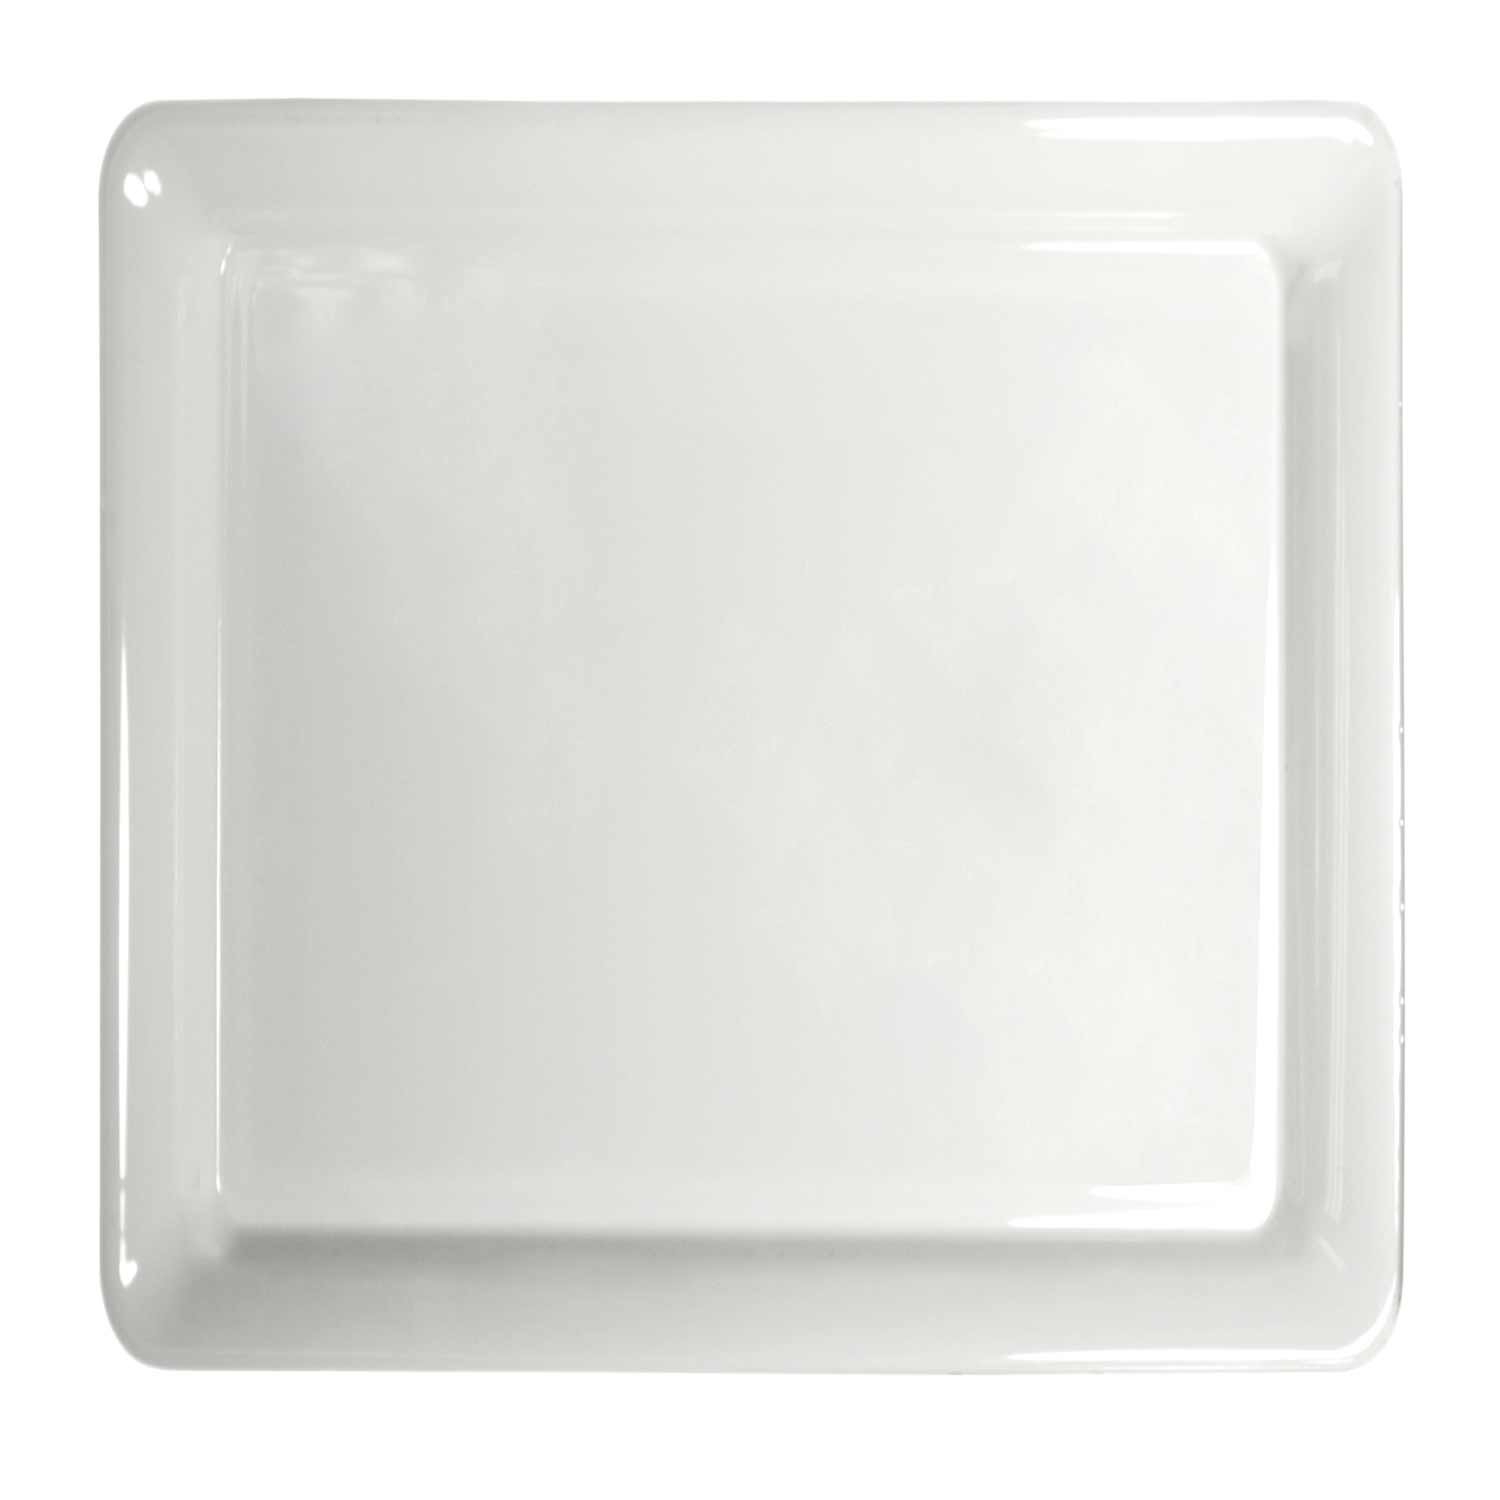 Party Essentials N161604 Heavy Duty Plastic Square Tray, 16'' Length x 16'' Width, White (Case of 6)